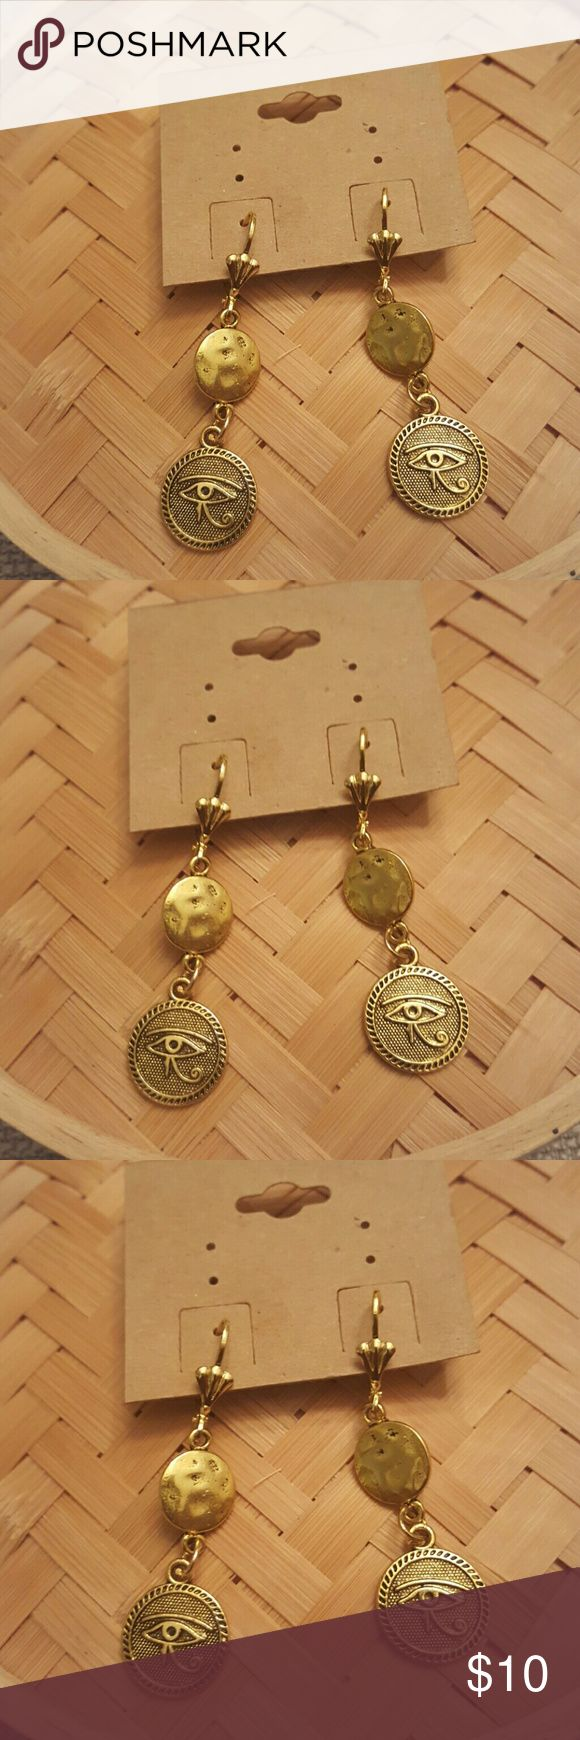 Ancient Egypt Eye of Ra gold charms earrings Ancient Egypt Eye of Ra  gold pewter charms Dangle earrings. Hypoallergenic gold lever backs ear wires.  Light weight. Jewelry Earrings